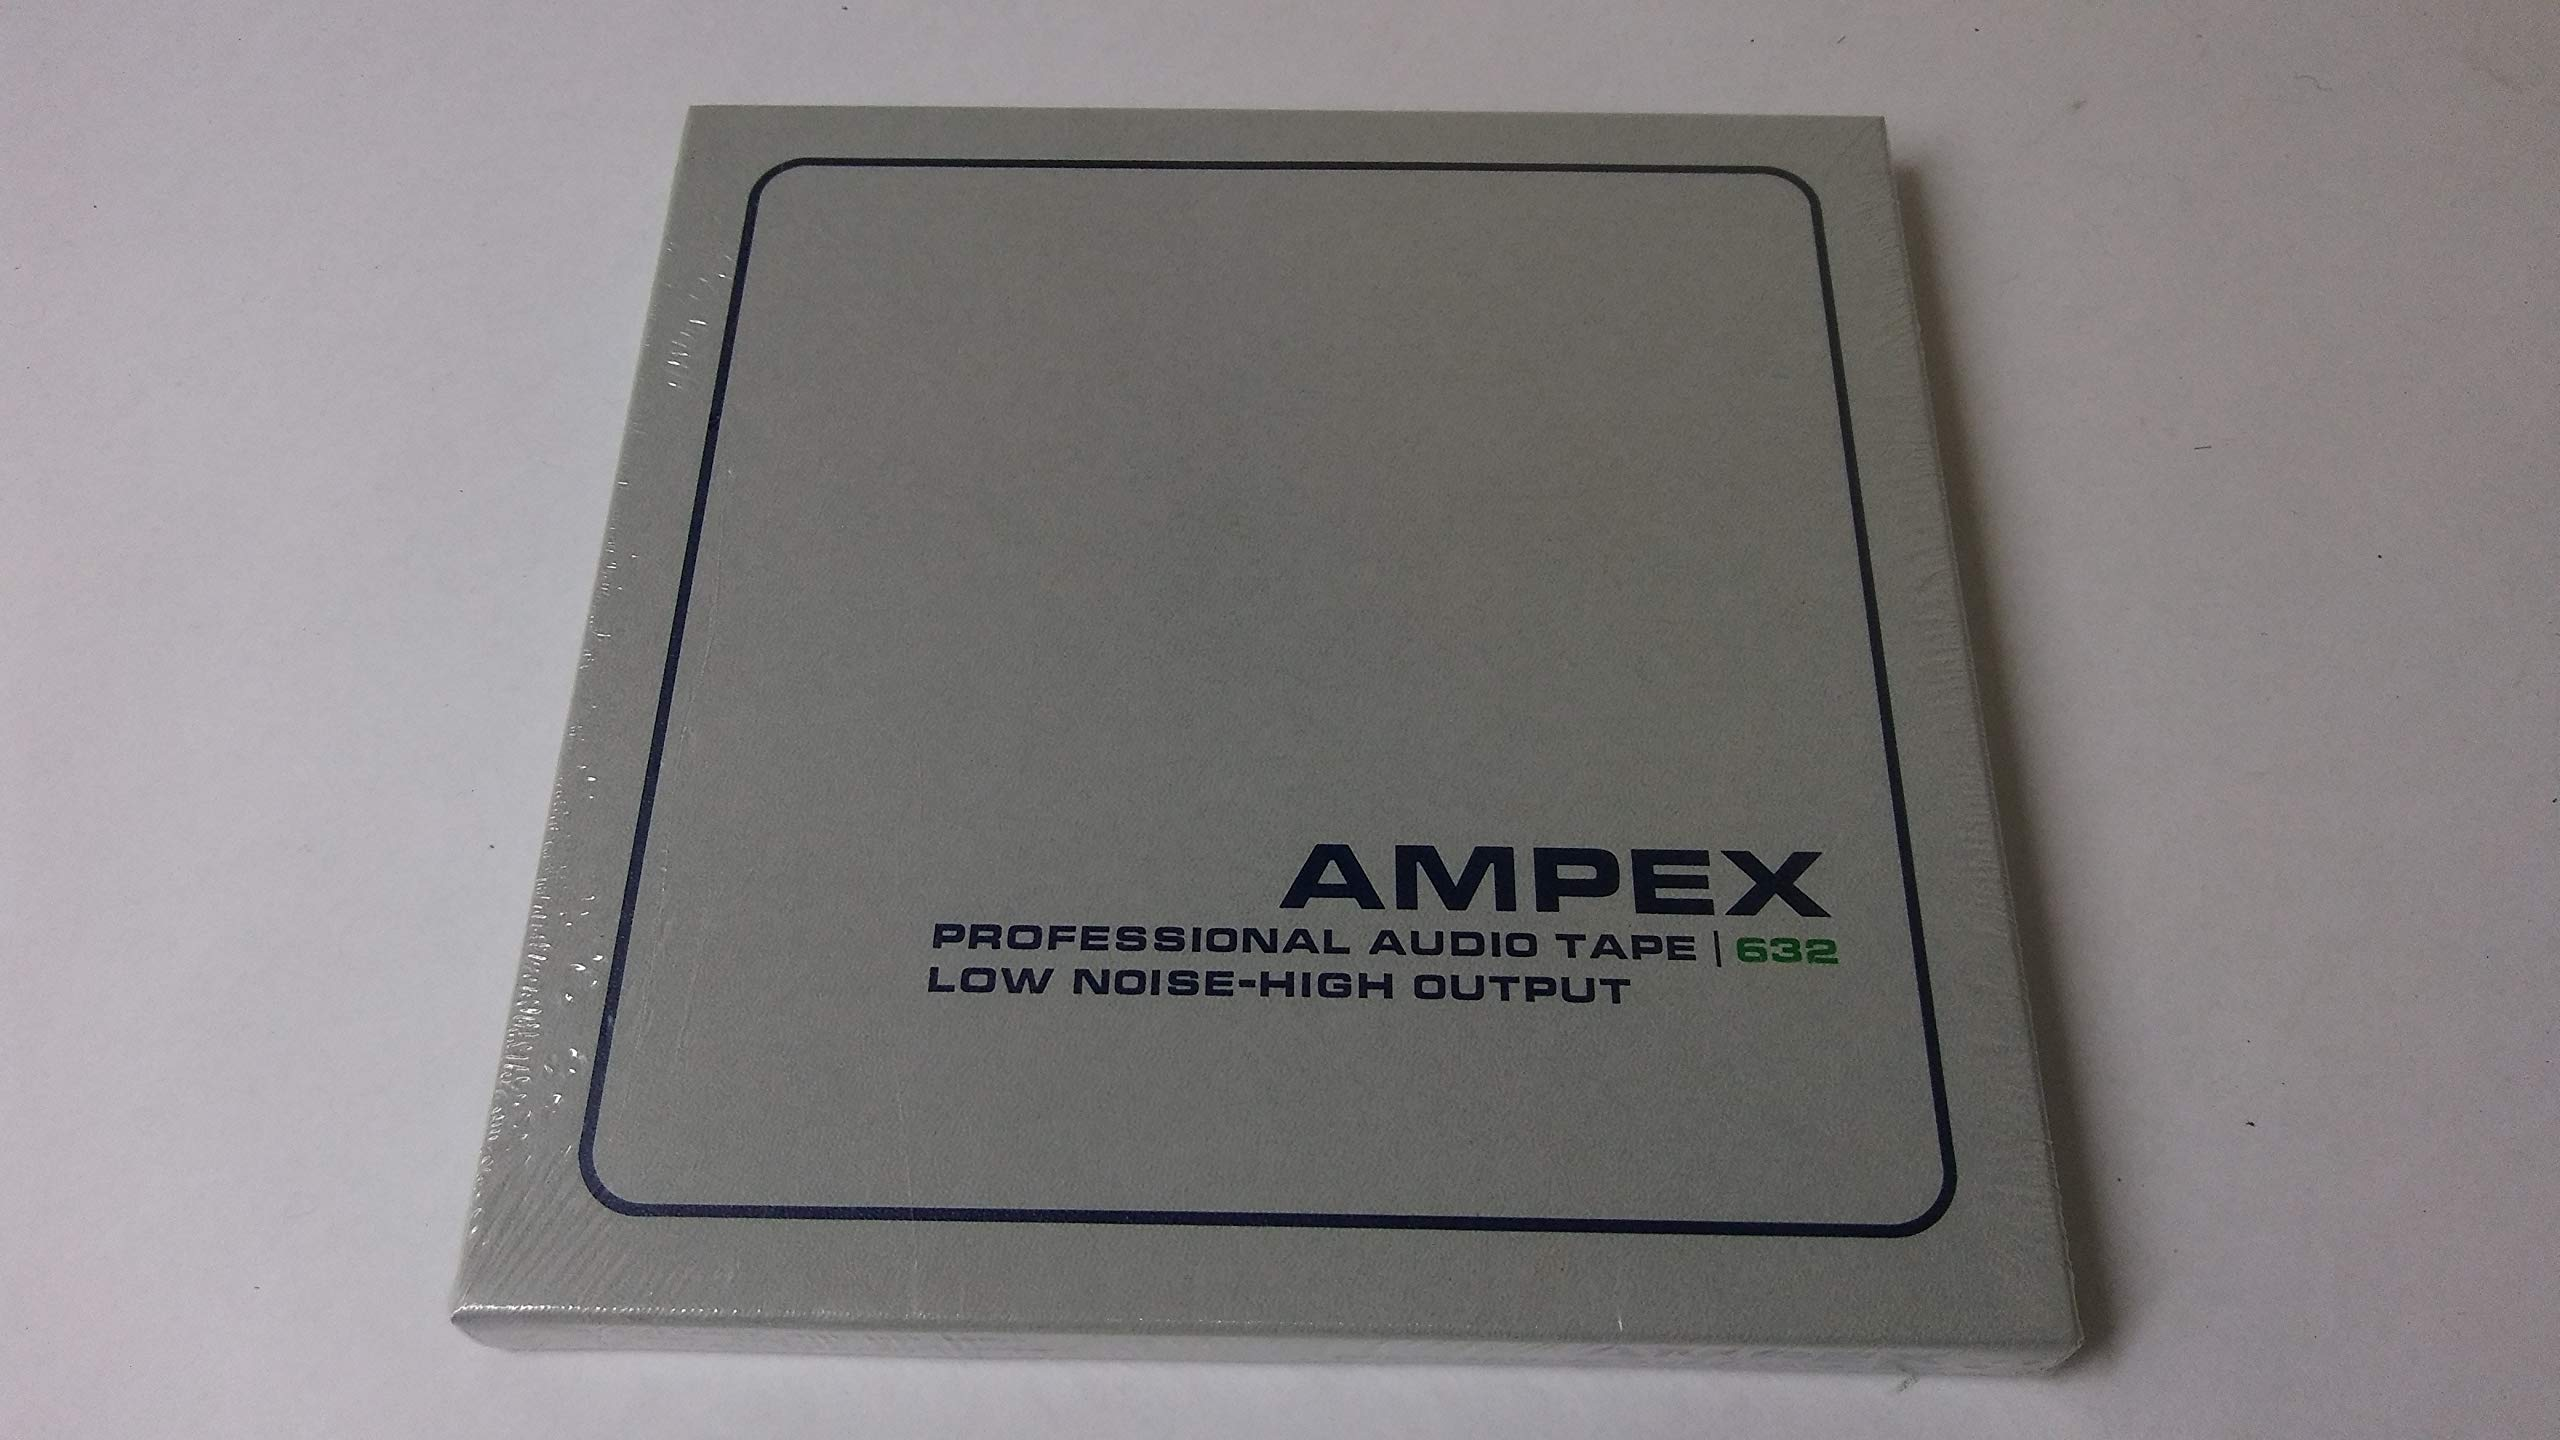 Ampex 1/4'' Professional Audio Tape Reel, 7 inch Reel, 1200 feet, 1.5 mil Polyester